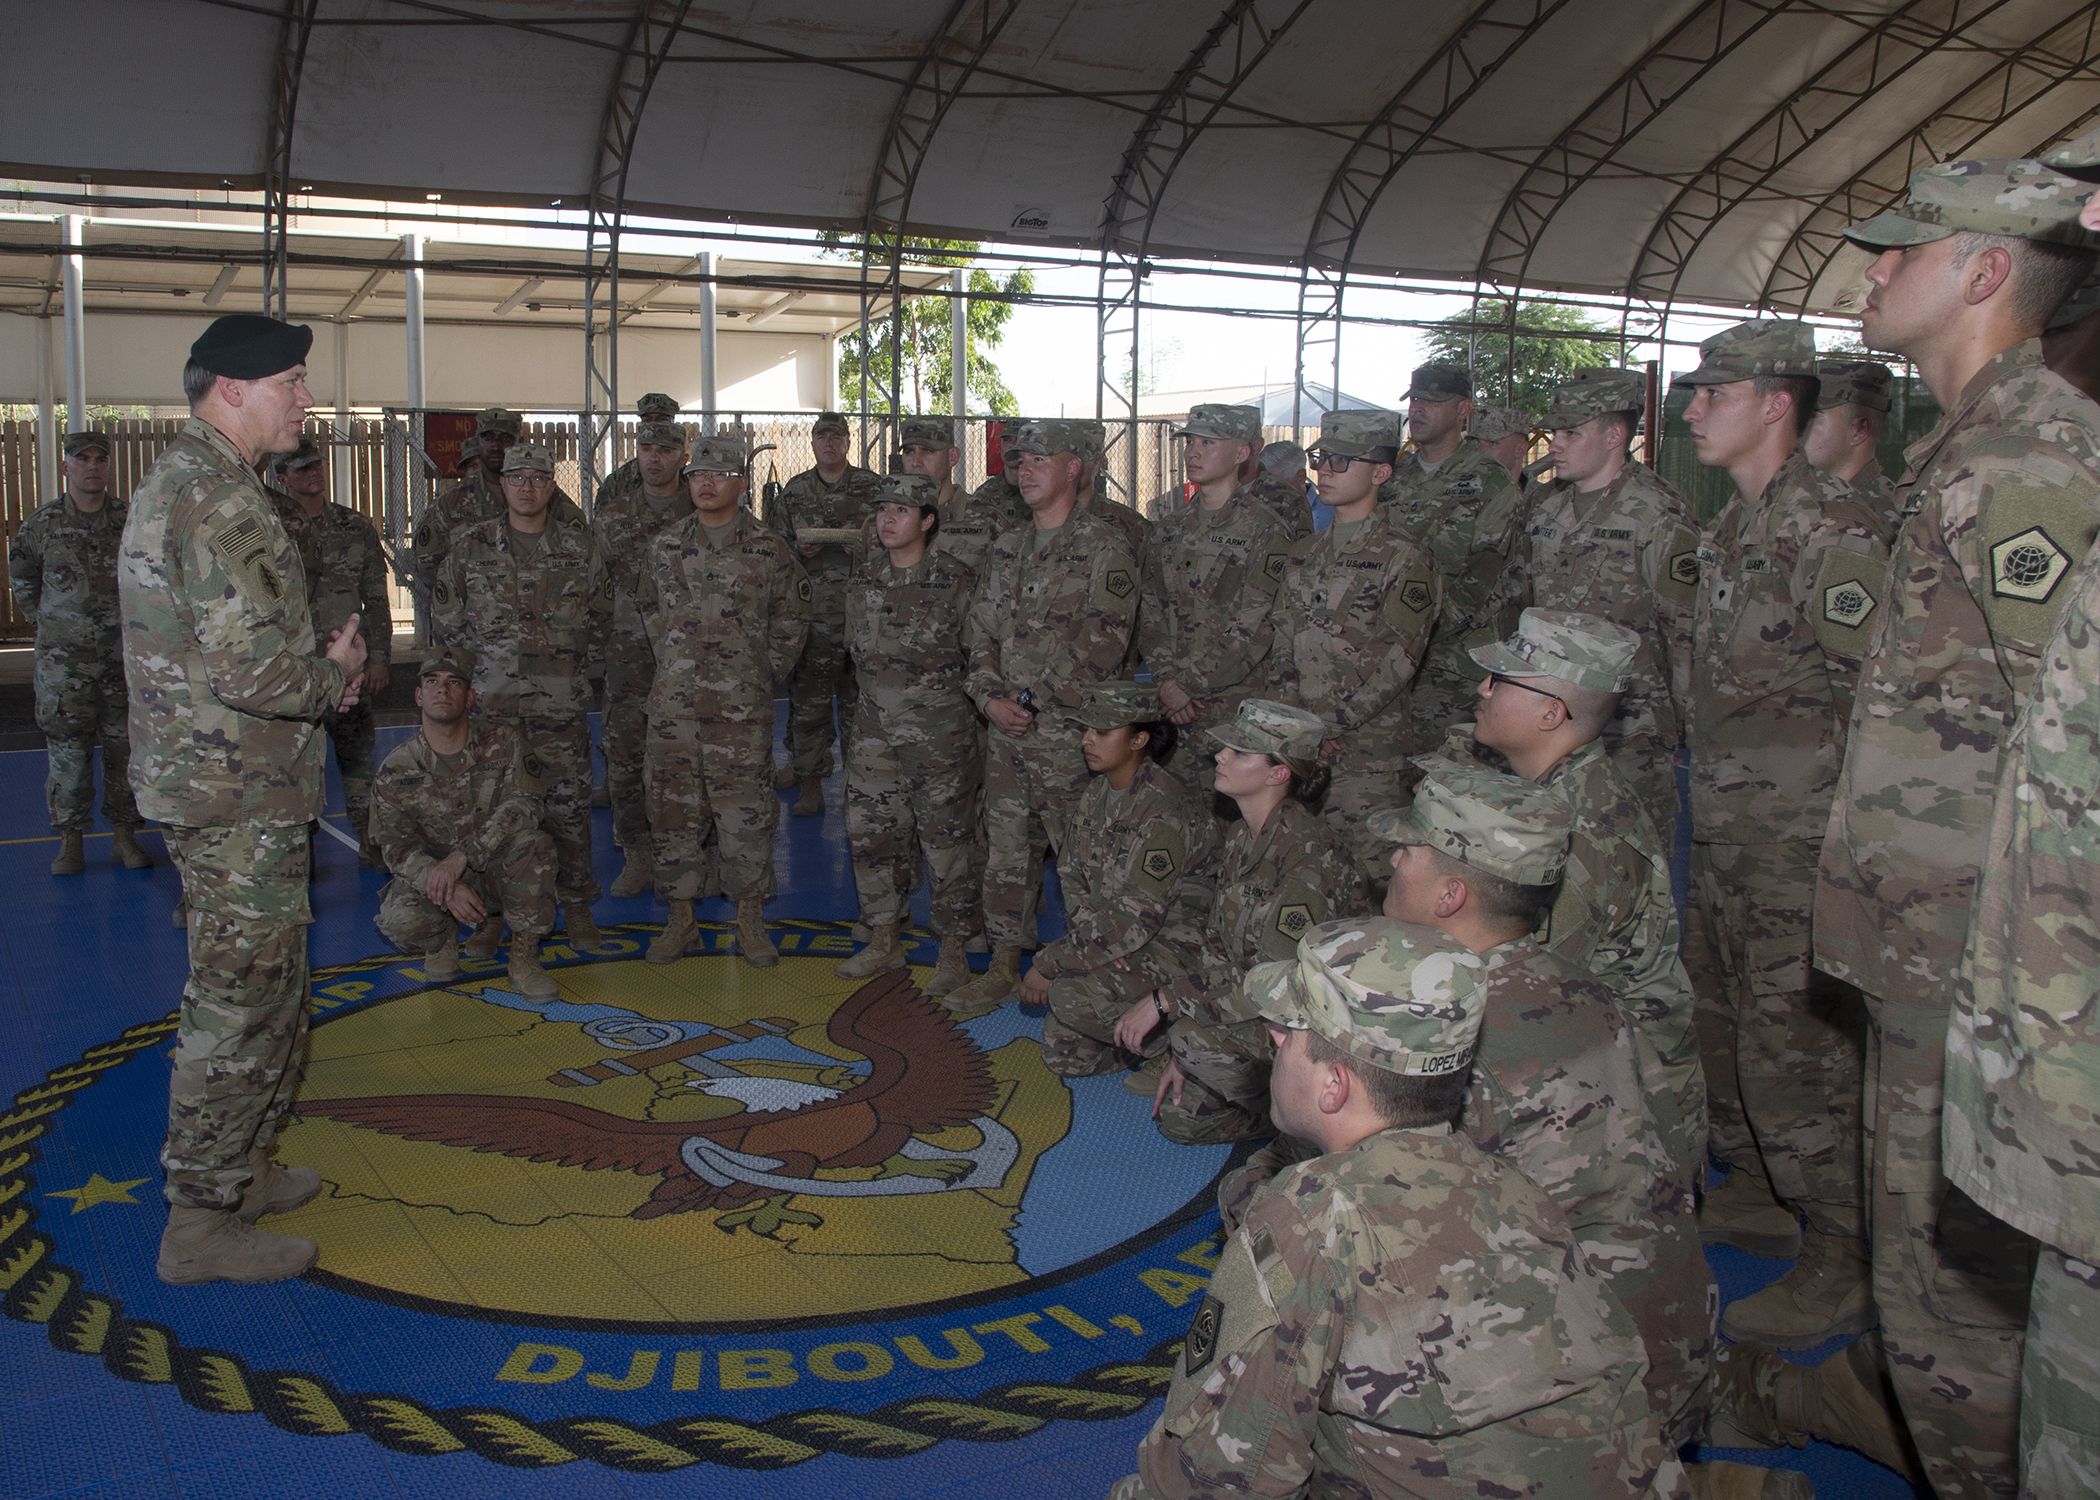 U S  Army combat patch ceremony   Combined Joint Task Force